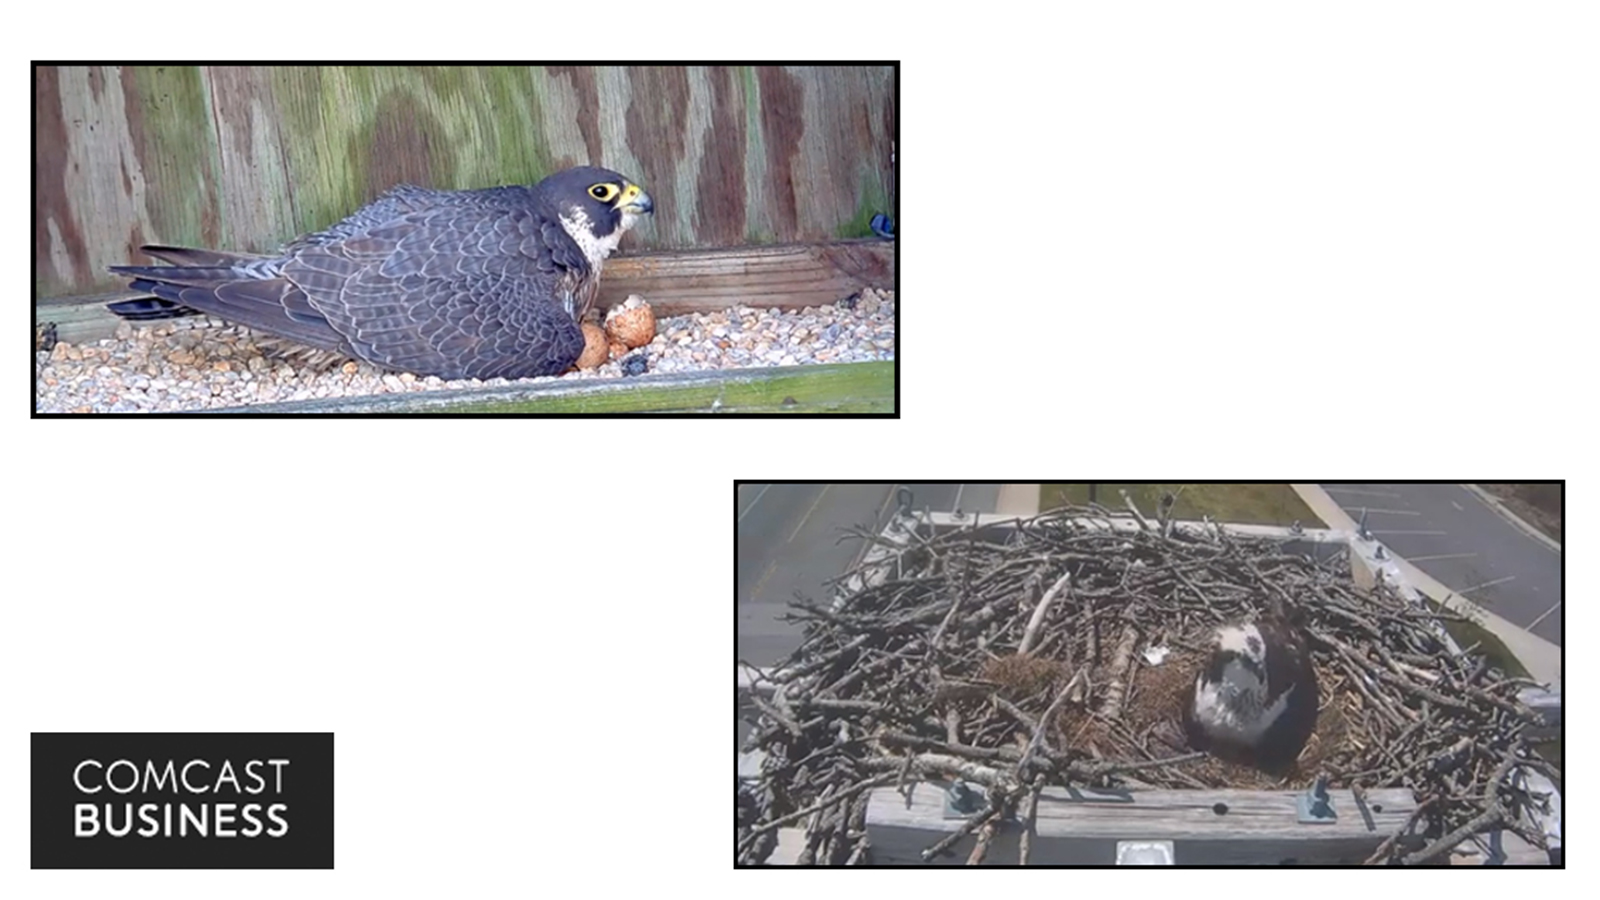 Join Us In Hatch Watch On Our Bird Cams In Richmond Va And Severna Park Md